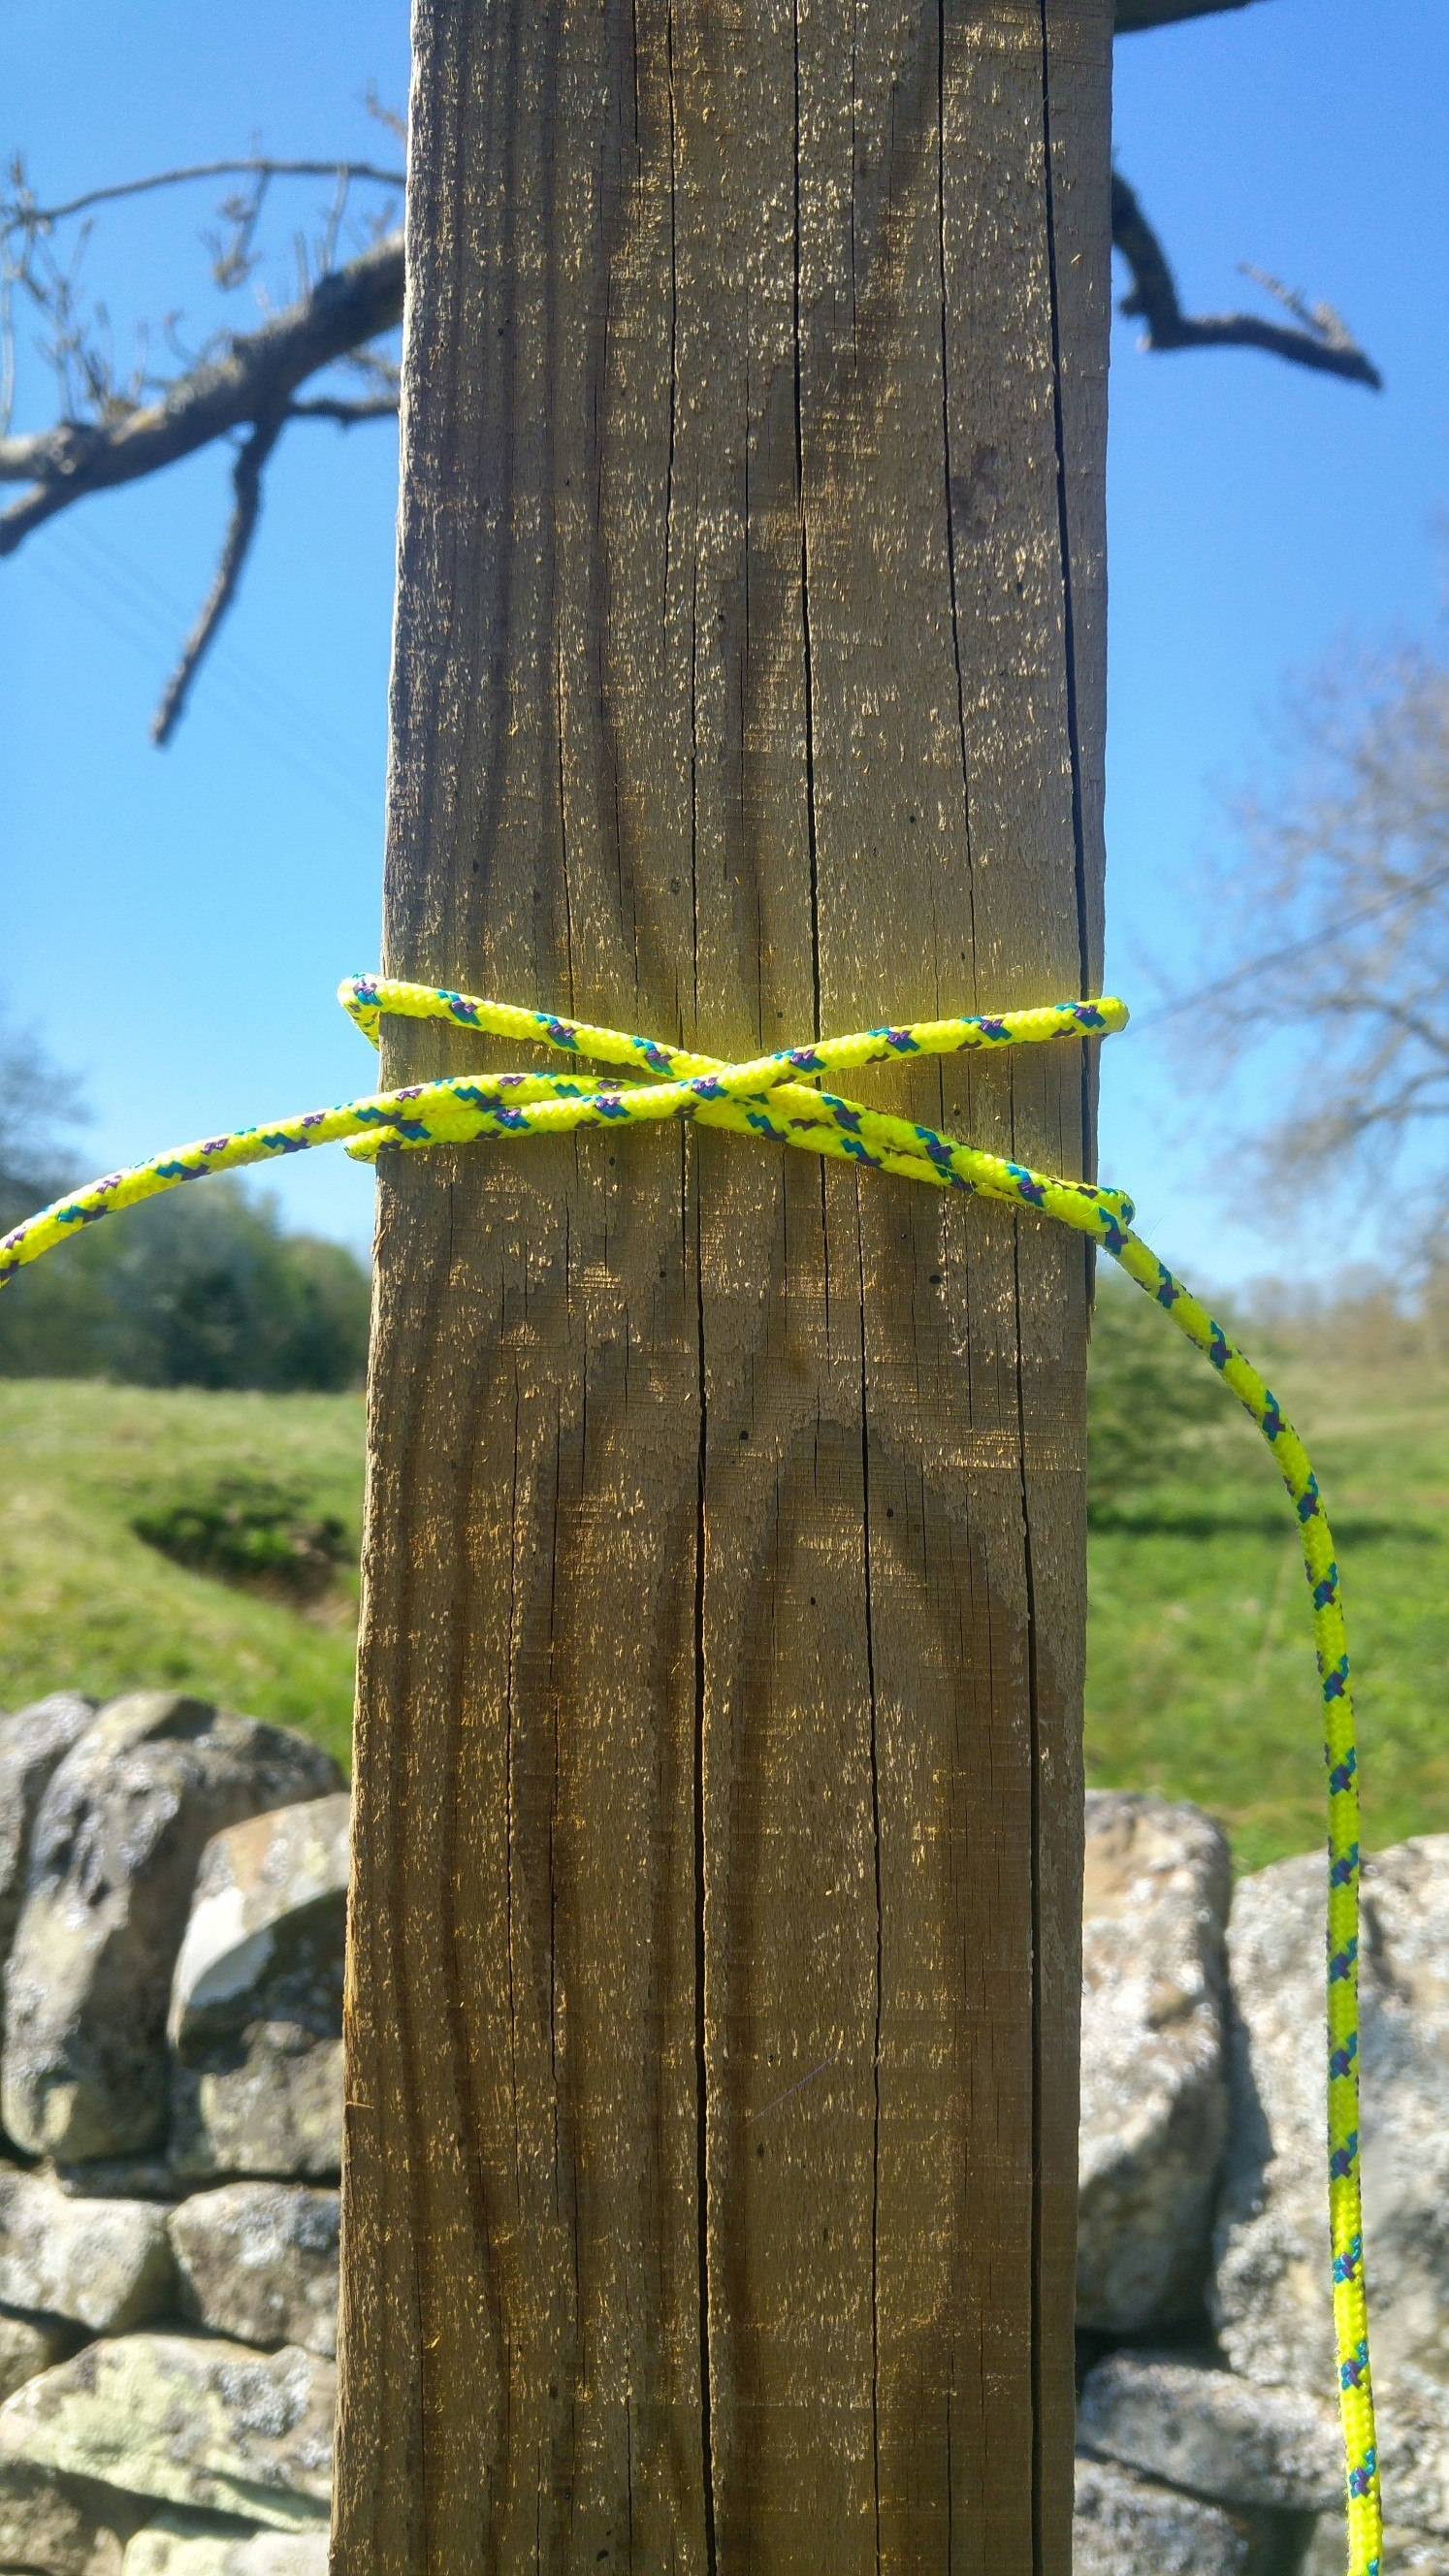 A clove hitch knot wrapped around a fingerpost